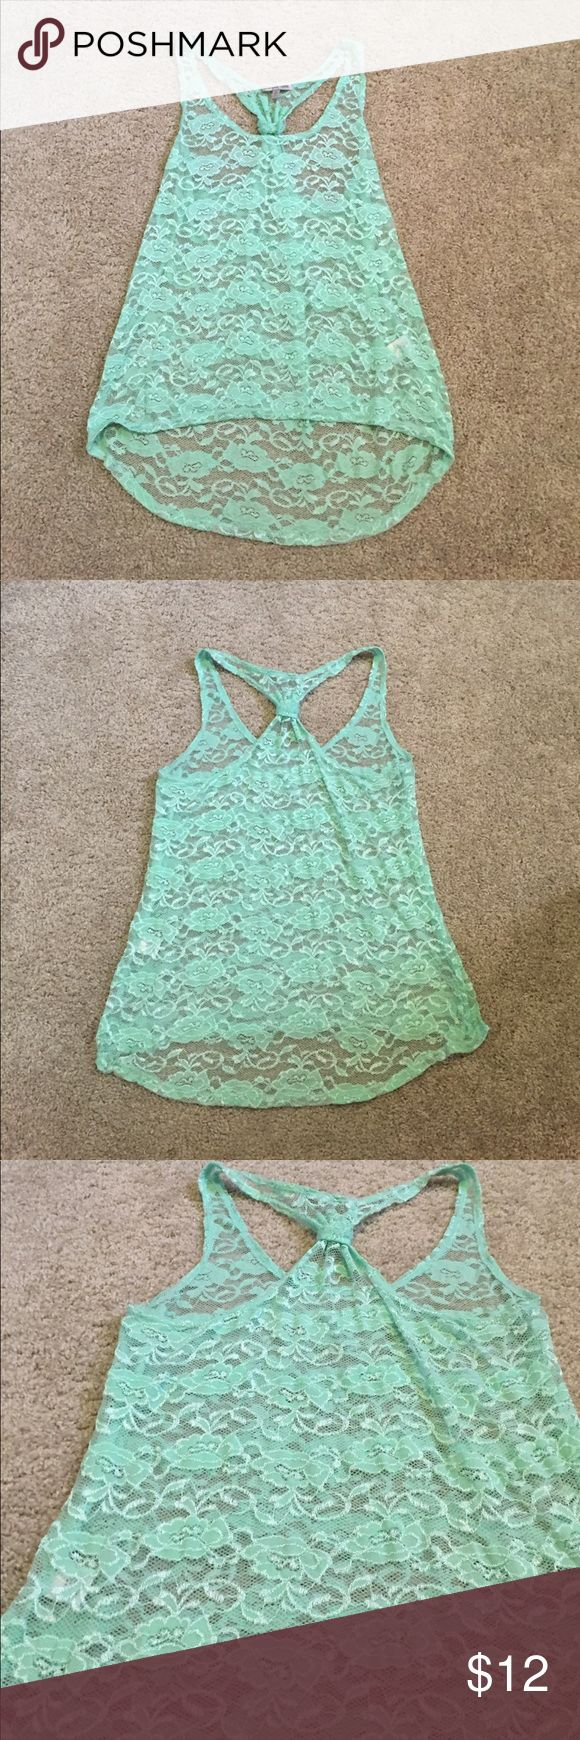 Mint green lace tank Mint green lace sheer racer back tank top Charlotte Russe Tops Tank Tops